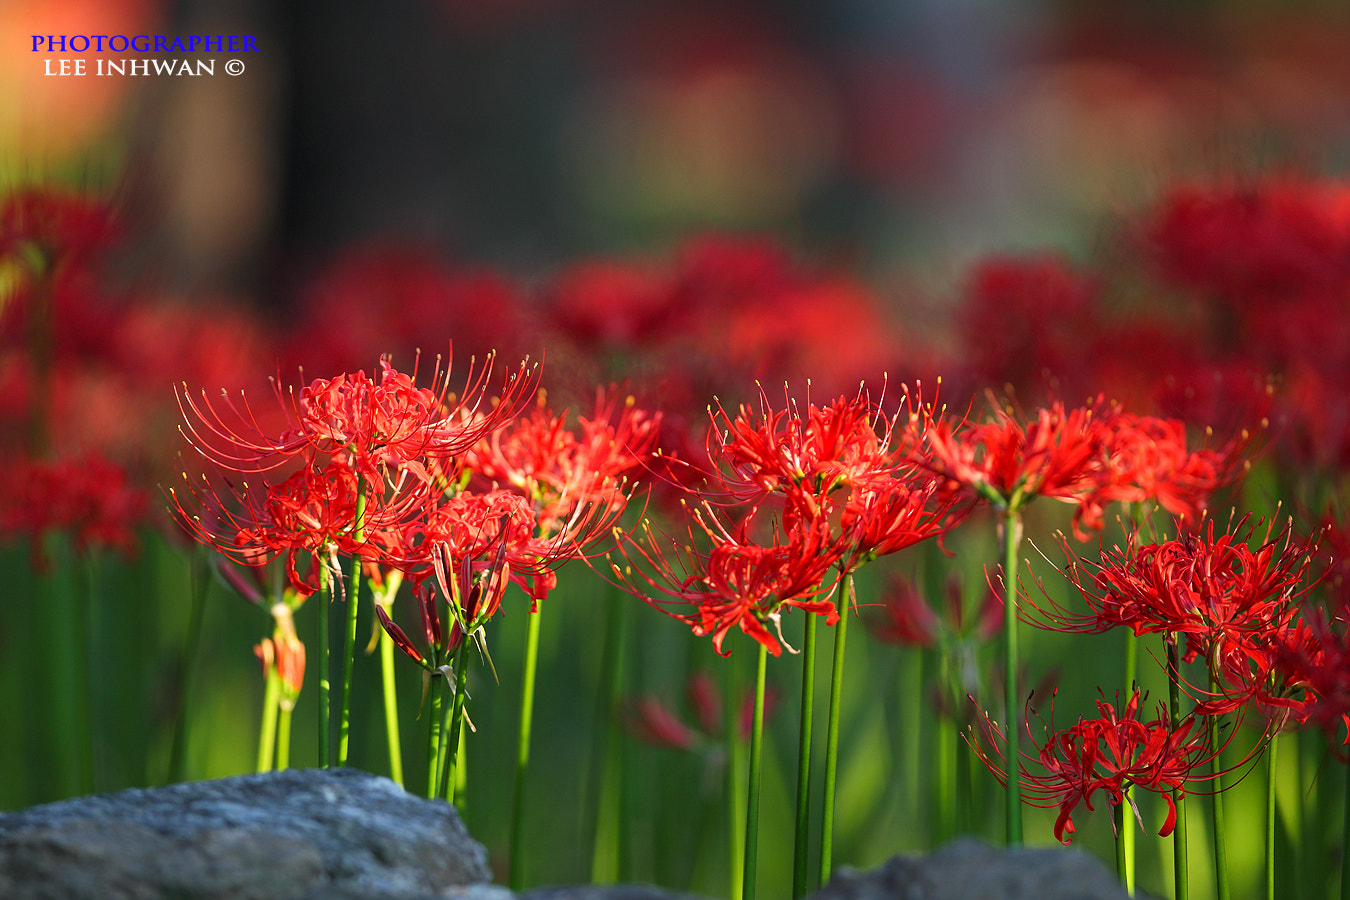 Photograph Lycoris radiata by LEE INHWAN on 500px